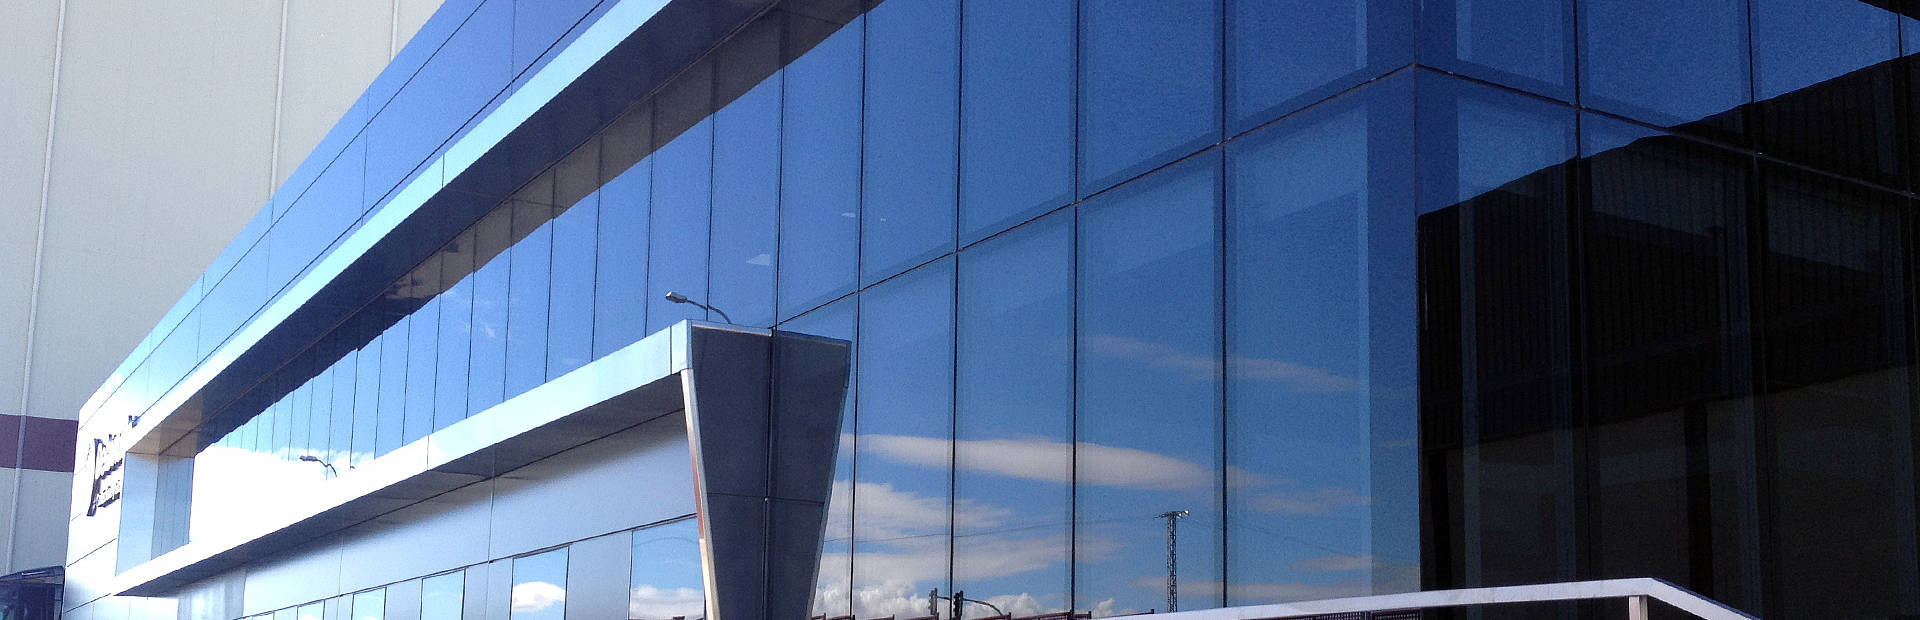 Q-Air glass curtain wall benefits